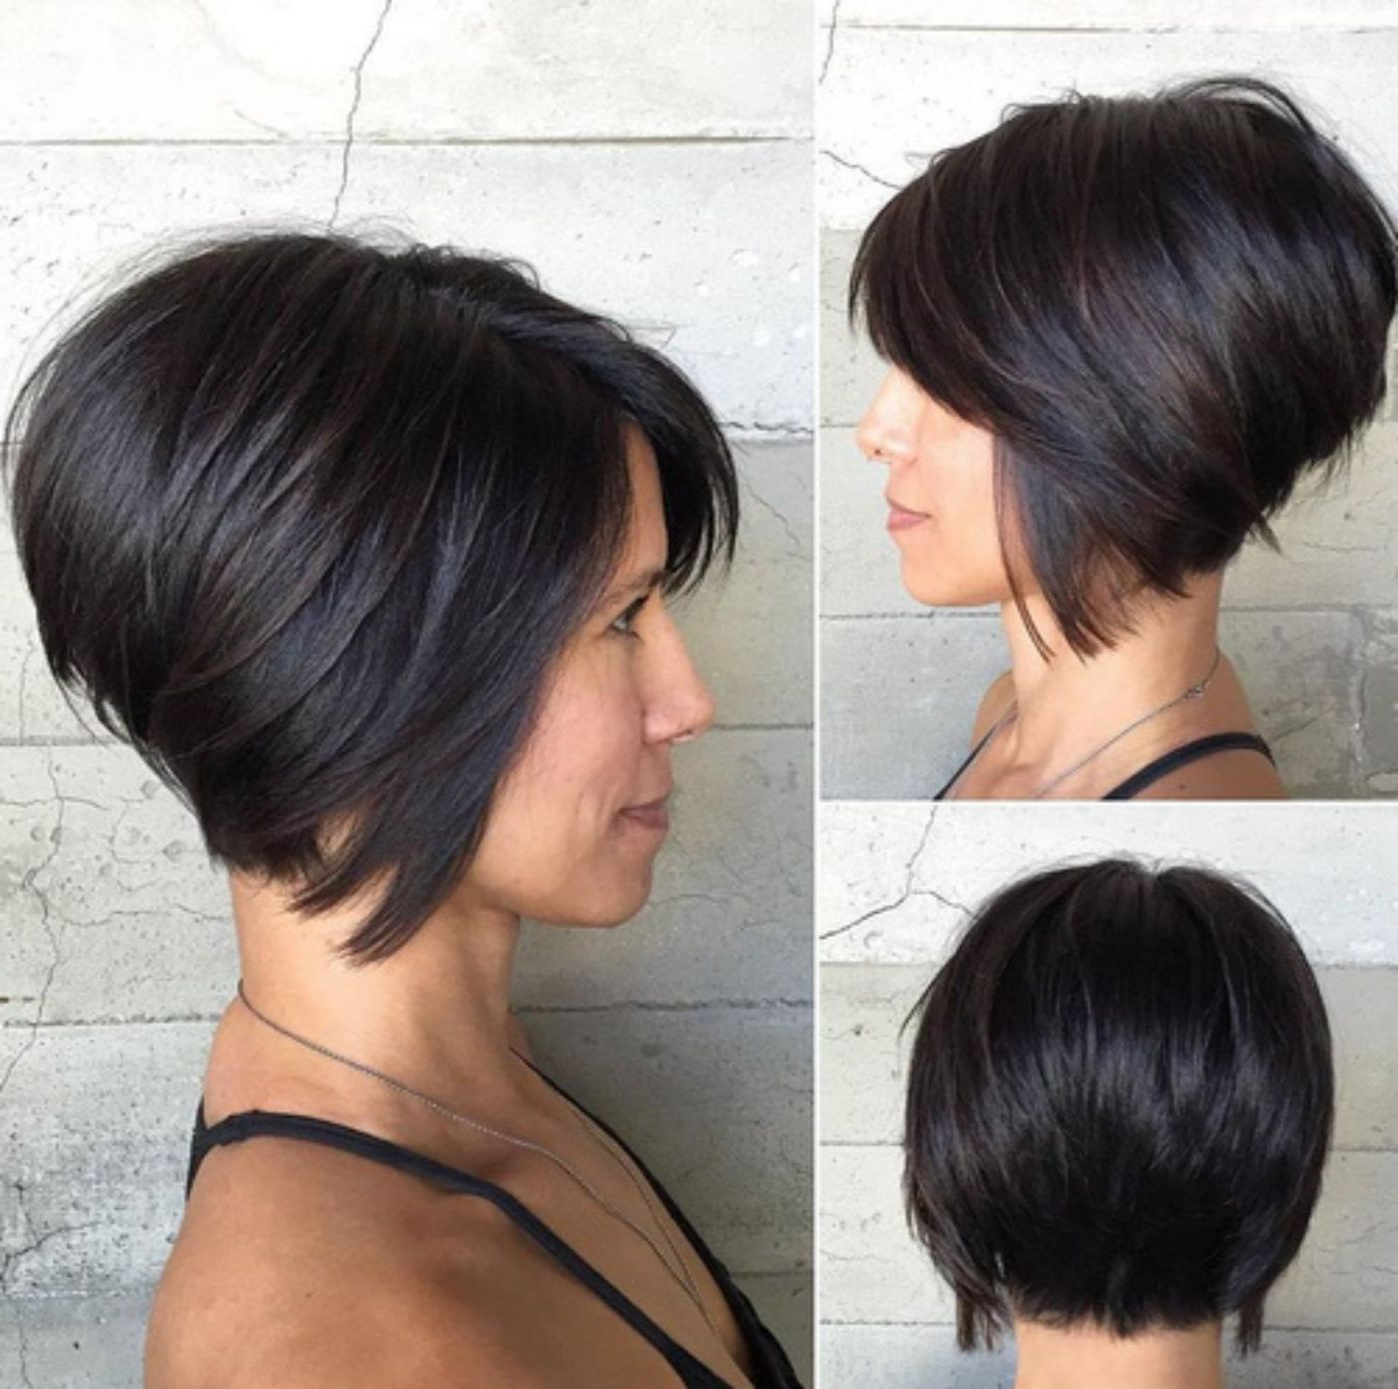 60 Classy Short Haircuts And Hairstyles For Thick Hair In 2018 In Classic Layered Bob Hairstyles For Thick Hair (View 13 of 20)